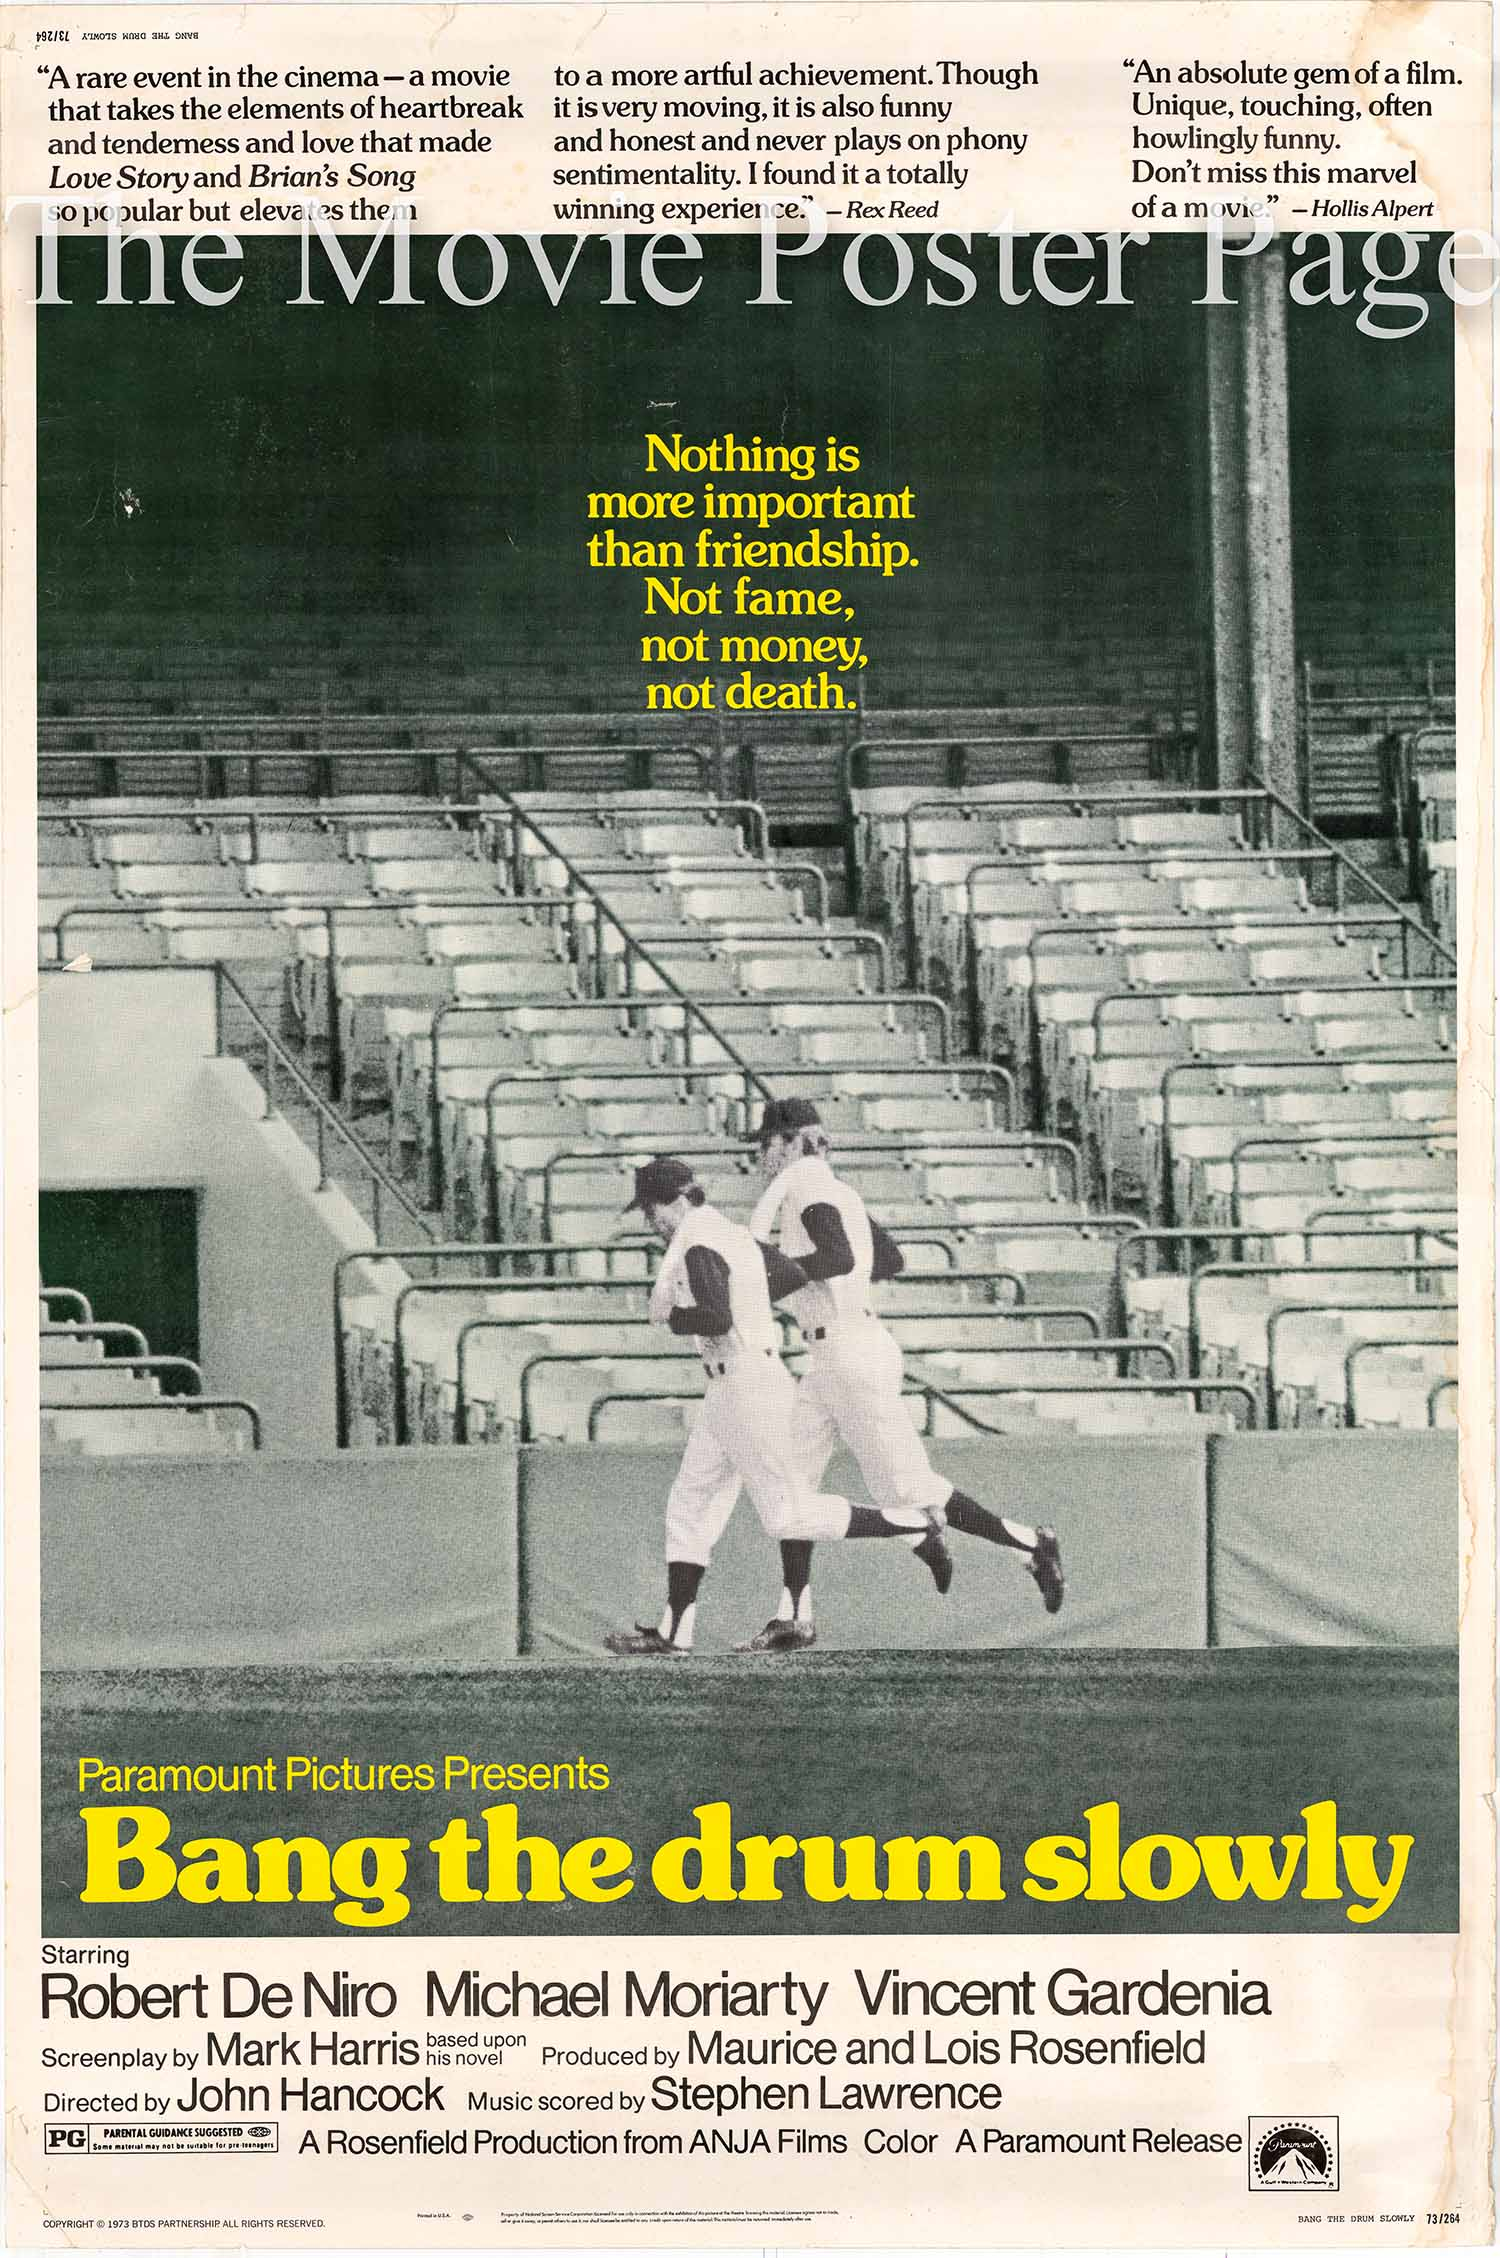 Pictured is a US 40x60 promotional poster for the 1973 john D. Hancock film Bang the Drum Slowly starring Robert De Niro.